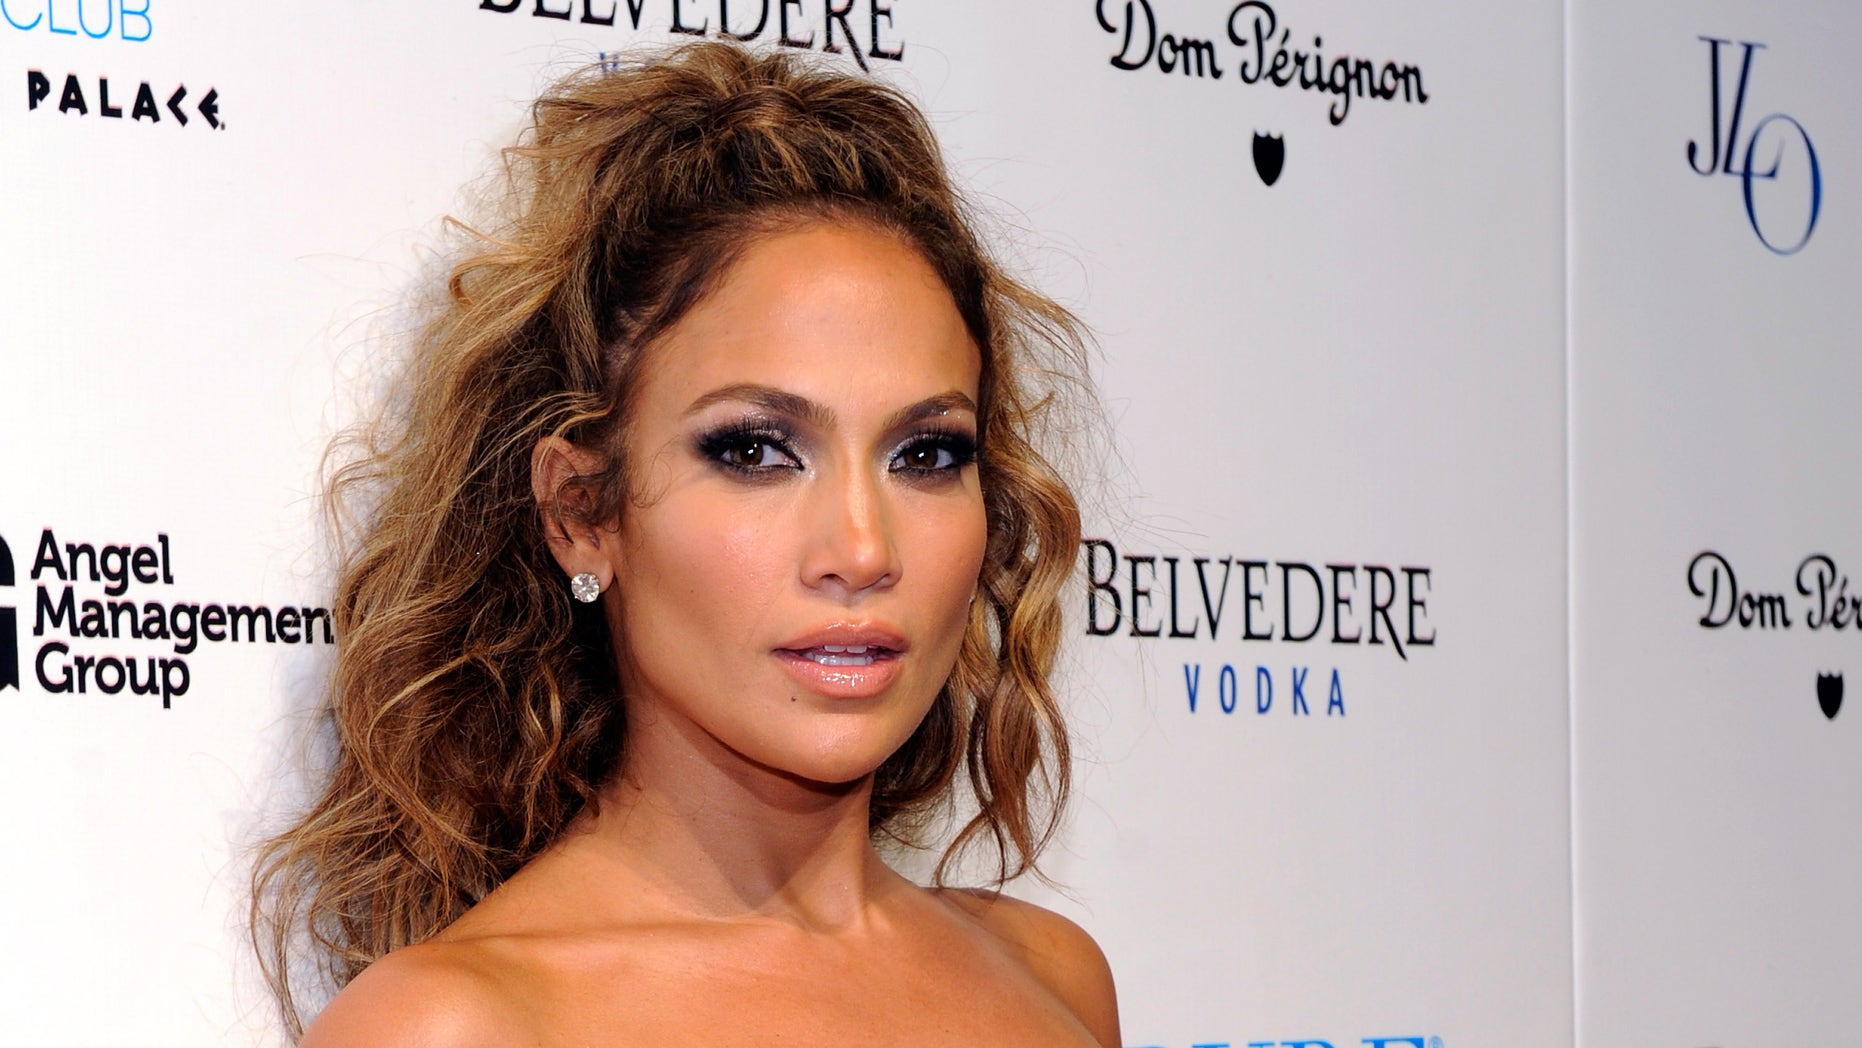 LAS VEGAS, NV - AUGUST 19:  Singer/actress Jennifer Lopez arrives at a post concert party at the Pure Nightclub at Caesars Palace early August 19, 2012 in Las Vegas, Nevada.  (Photo by David Becker/Getty Images)